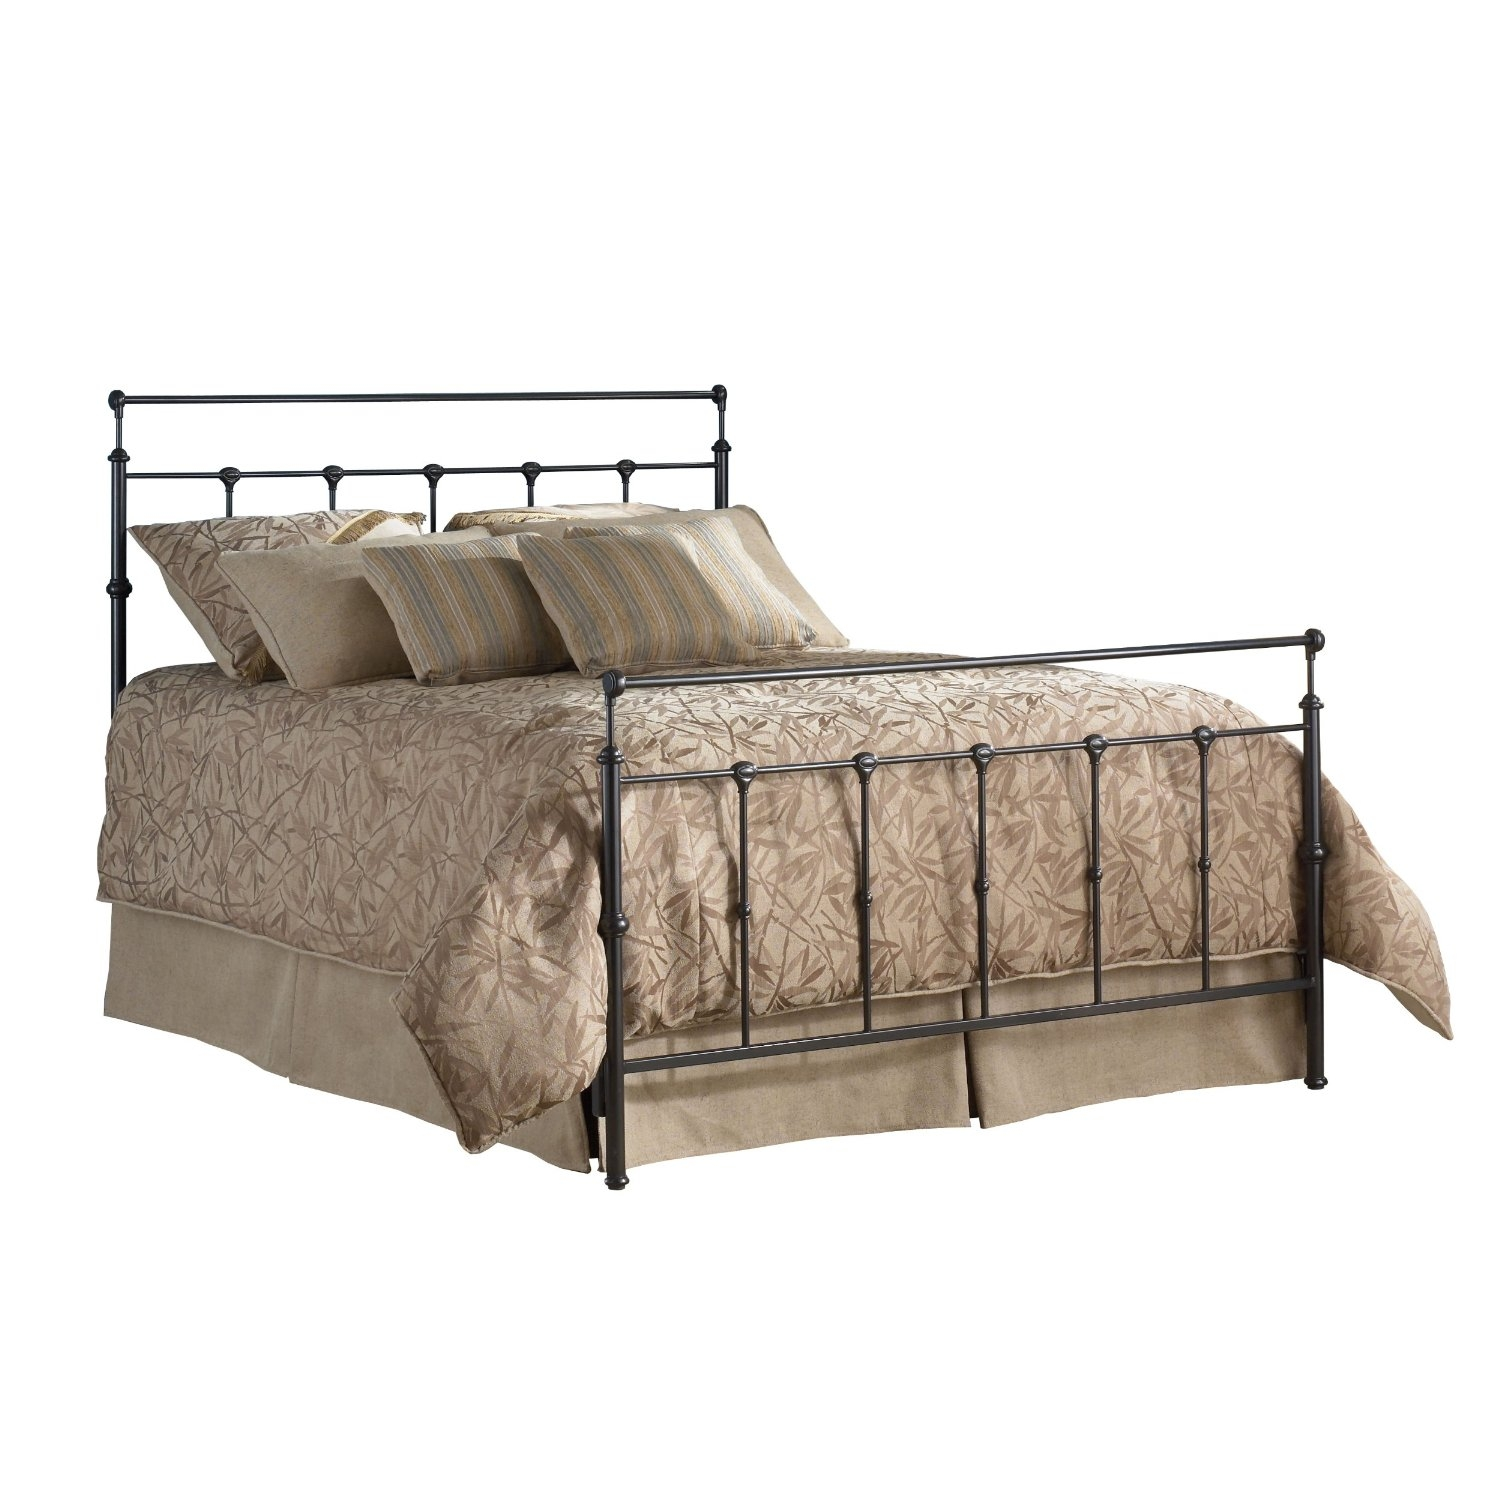 rose headboards bed gold krystal the metal headboard post